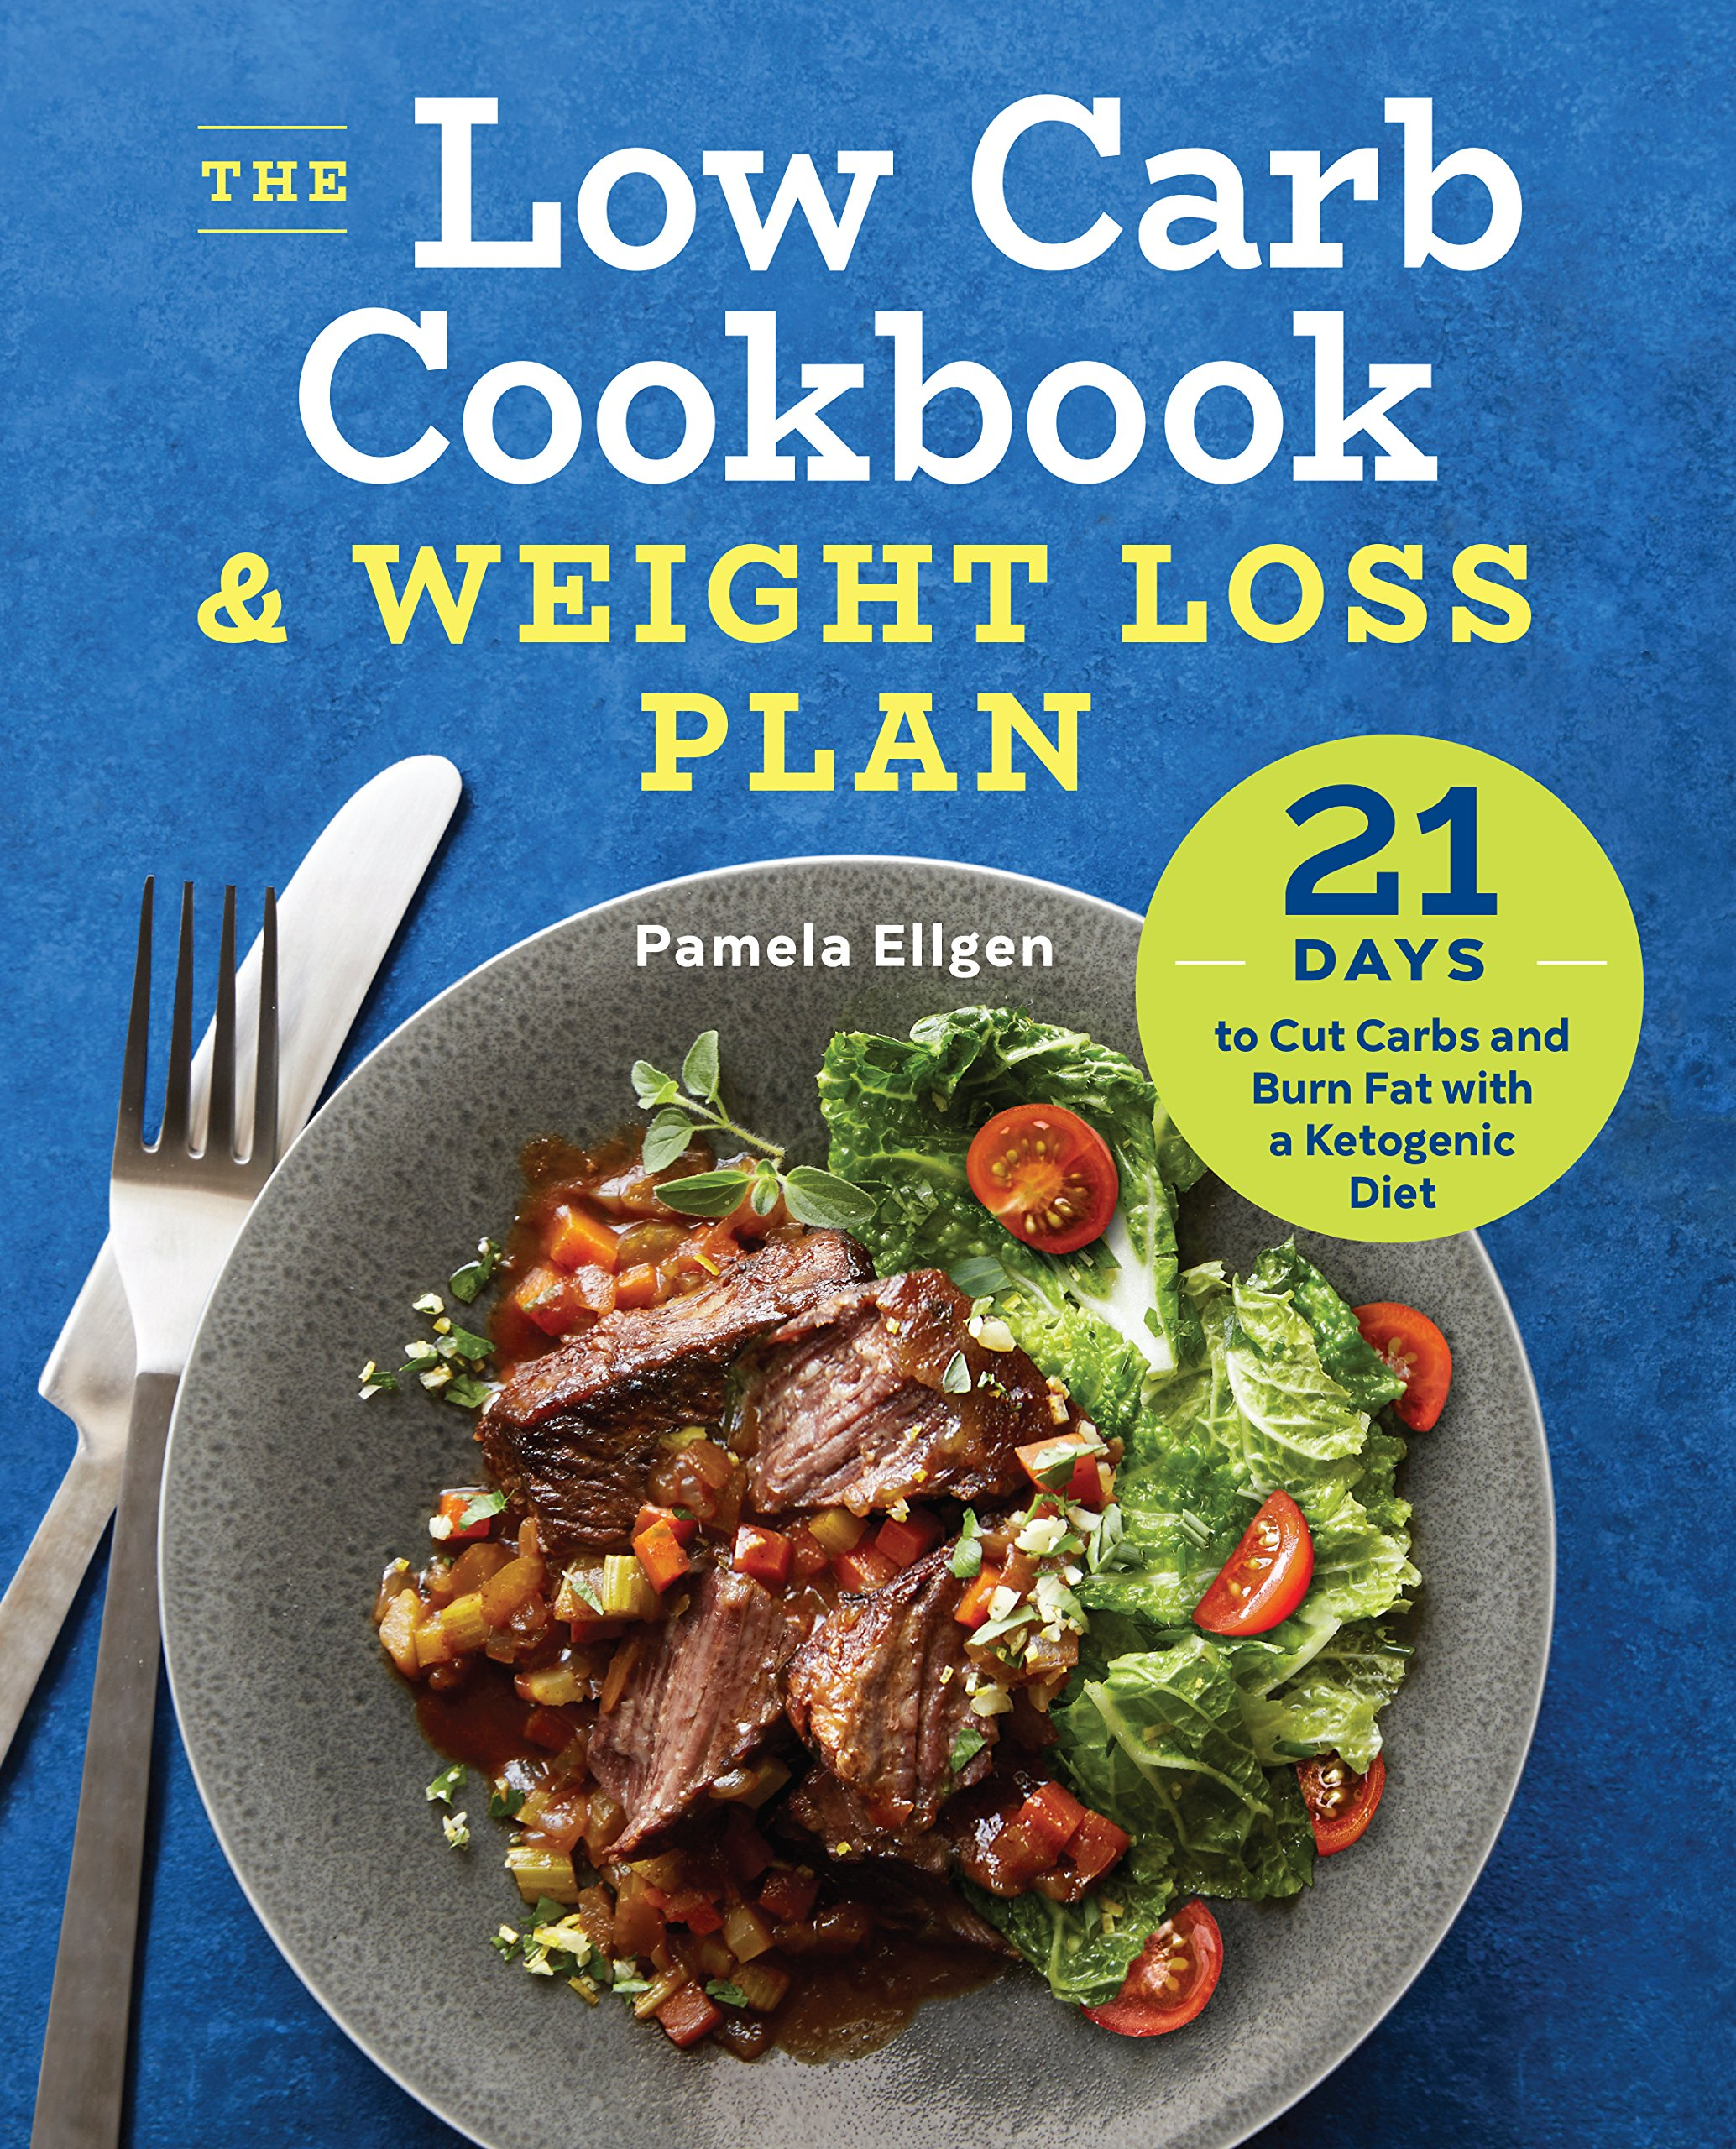 The Low Carb Cookbook & Weight Loss Plan: 21 Days to Cut Carbs and Burn Fat with a Ketogenic Diet 1